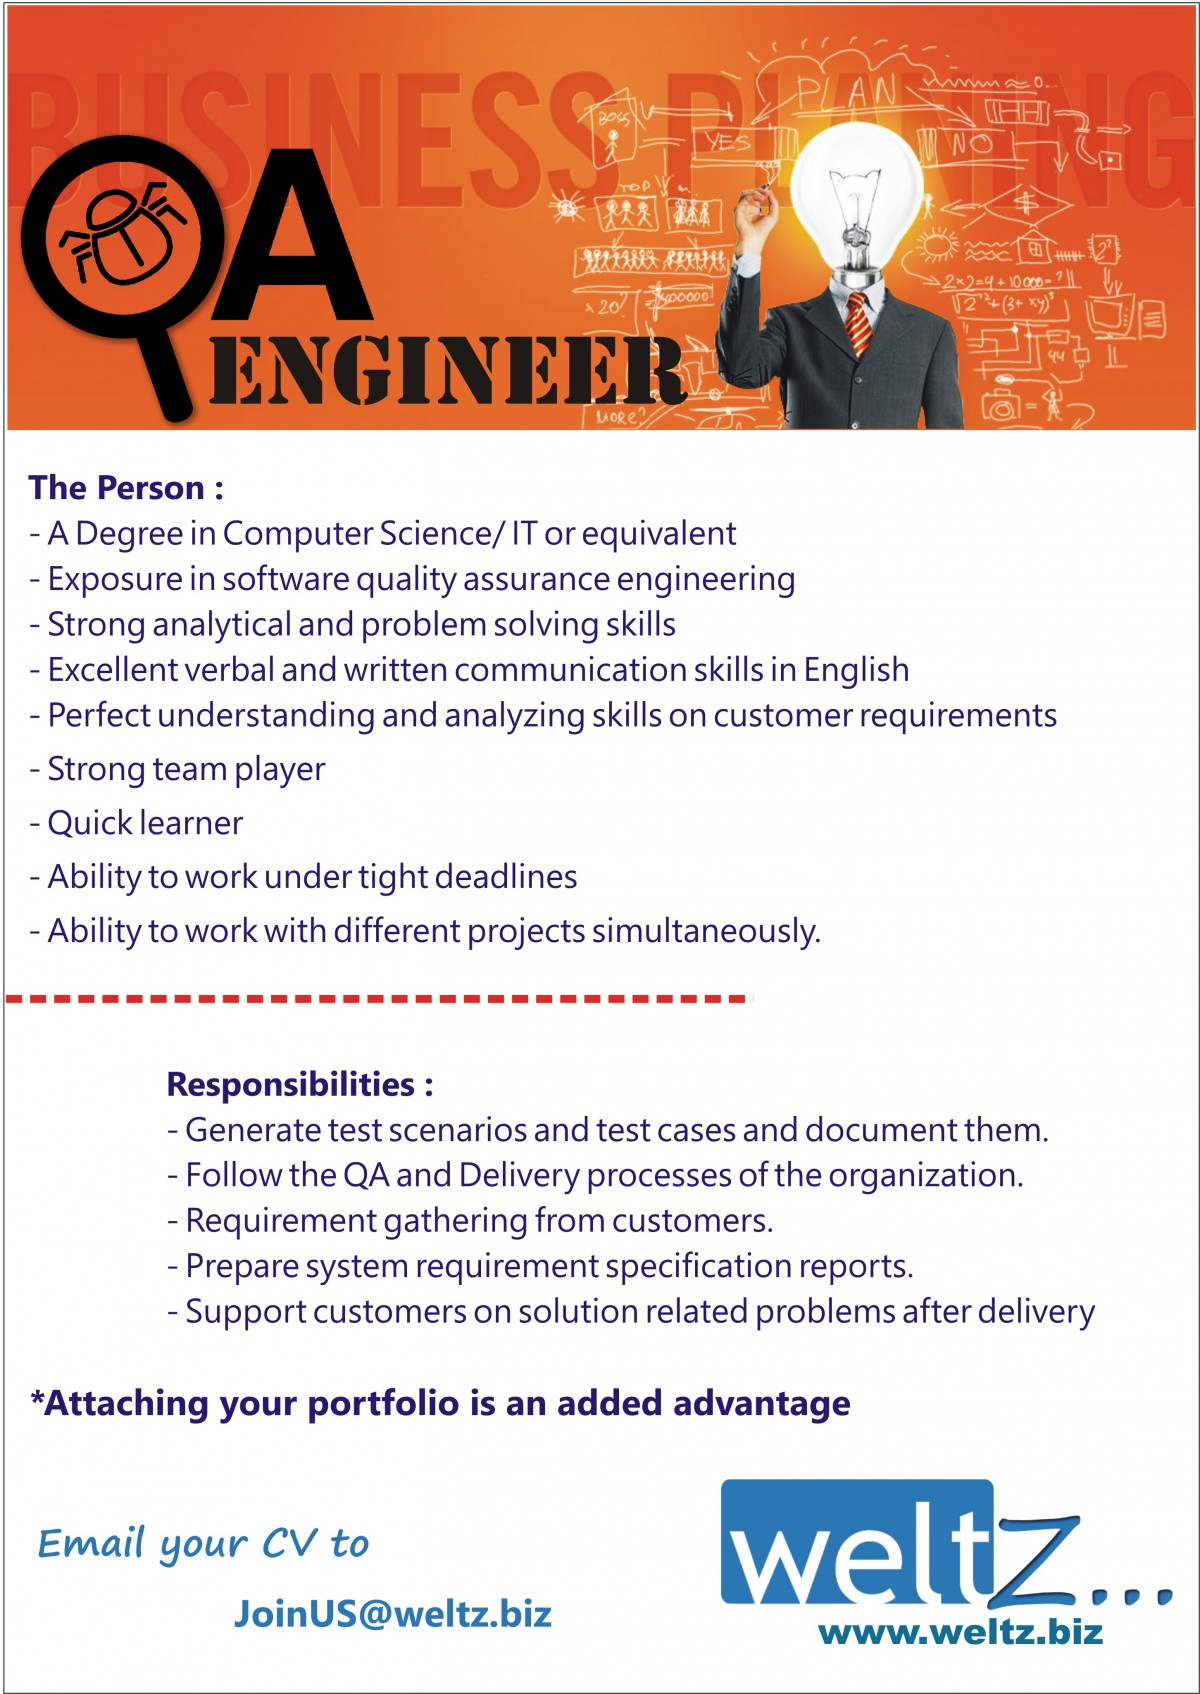 qa engineer job vacancy in sri lanka a degree in computer science it or equivalent exposure in software quality assurance engineering strong analytical and problem solving skills